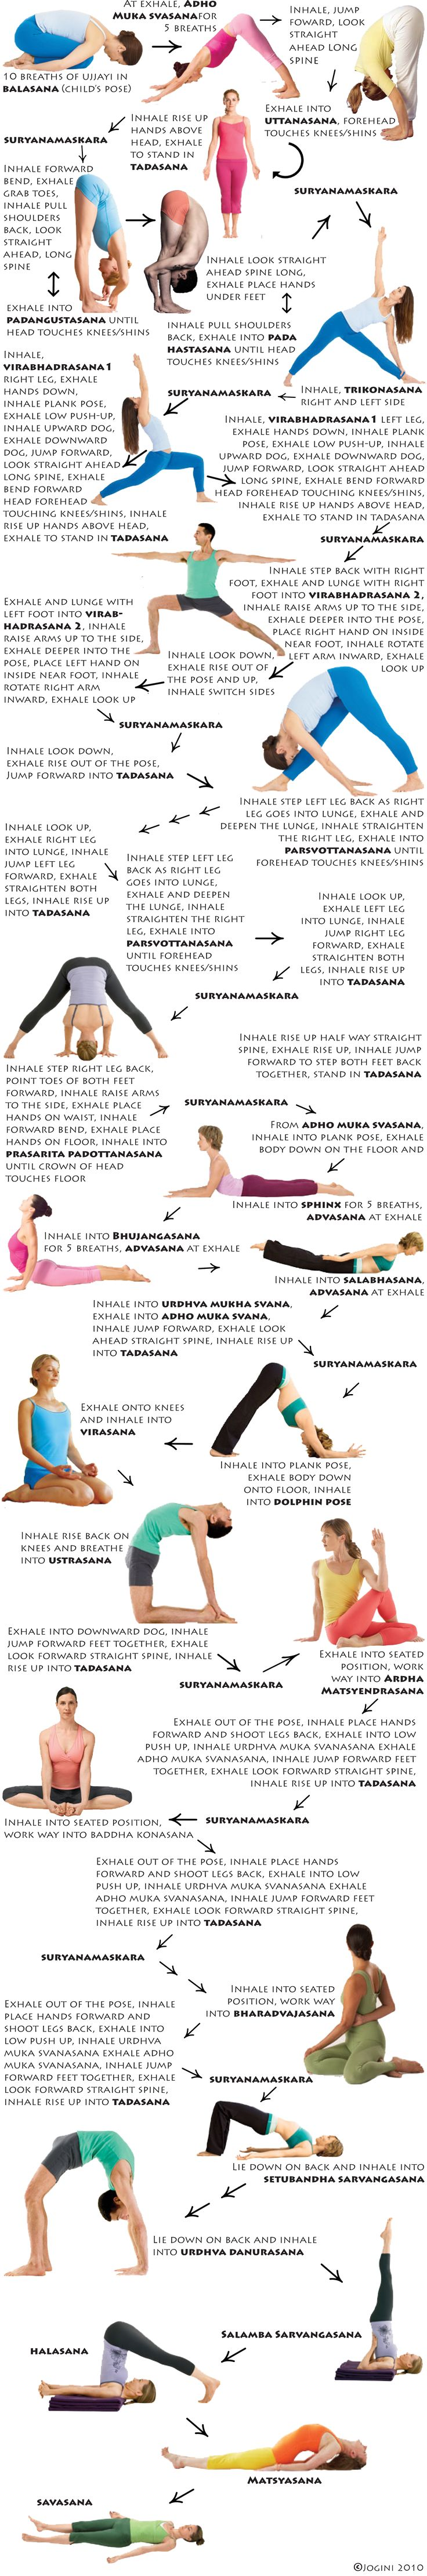 Yoga flow: a great morning or post work sequence